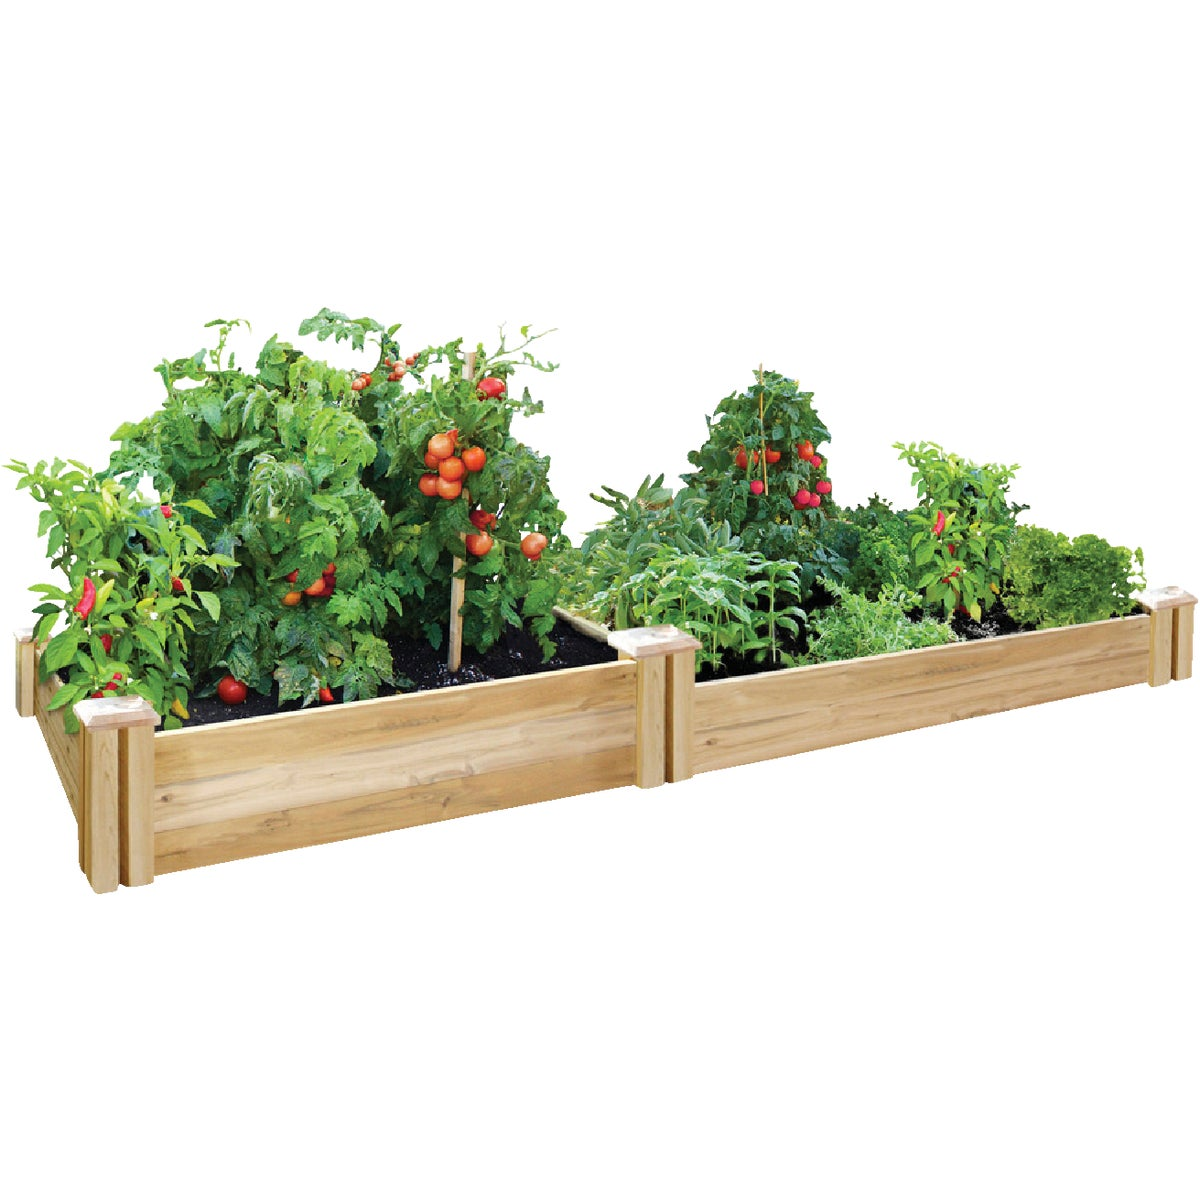 4'X8'CEDAR RAISED GARDEN - RC4C8T2 by Greenes Fence Co